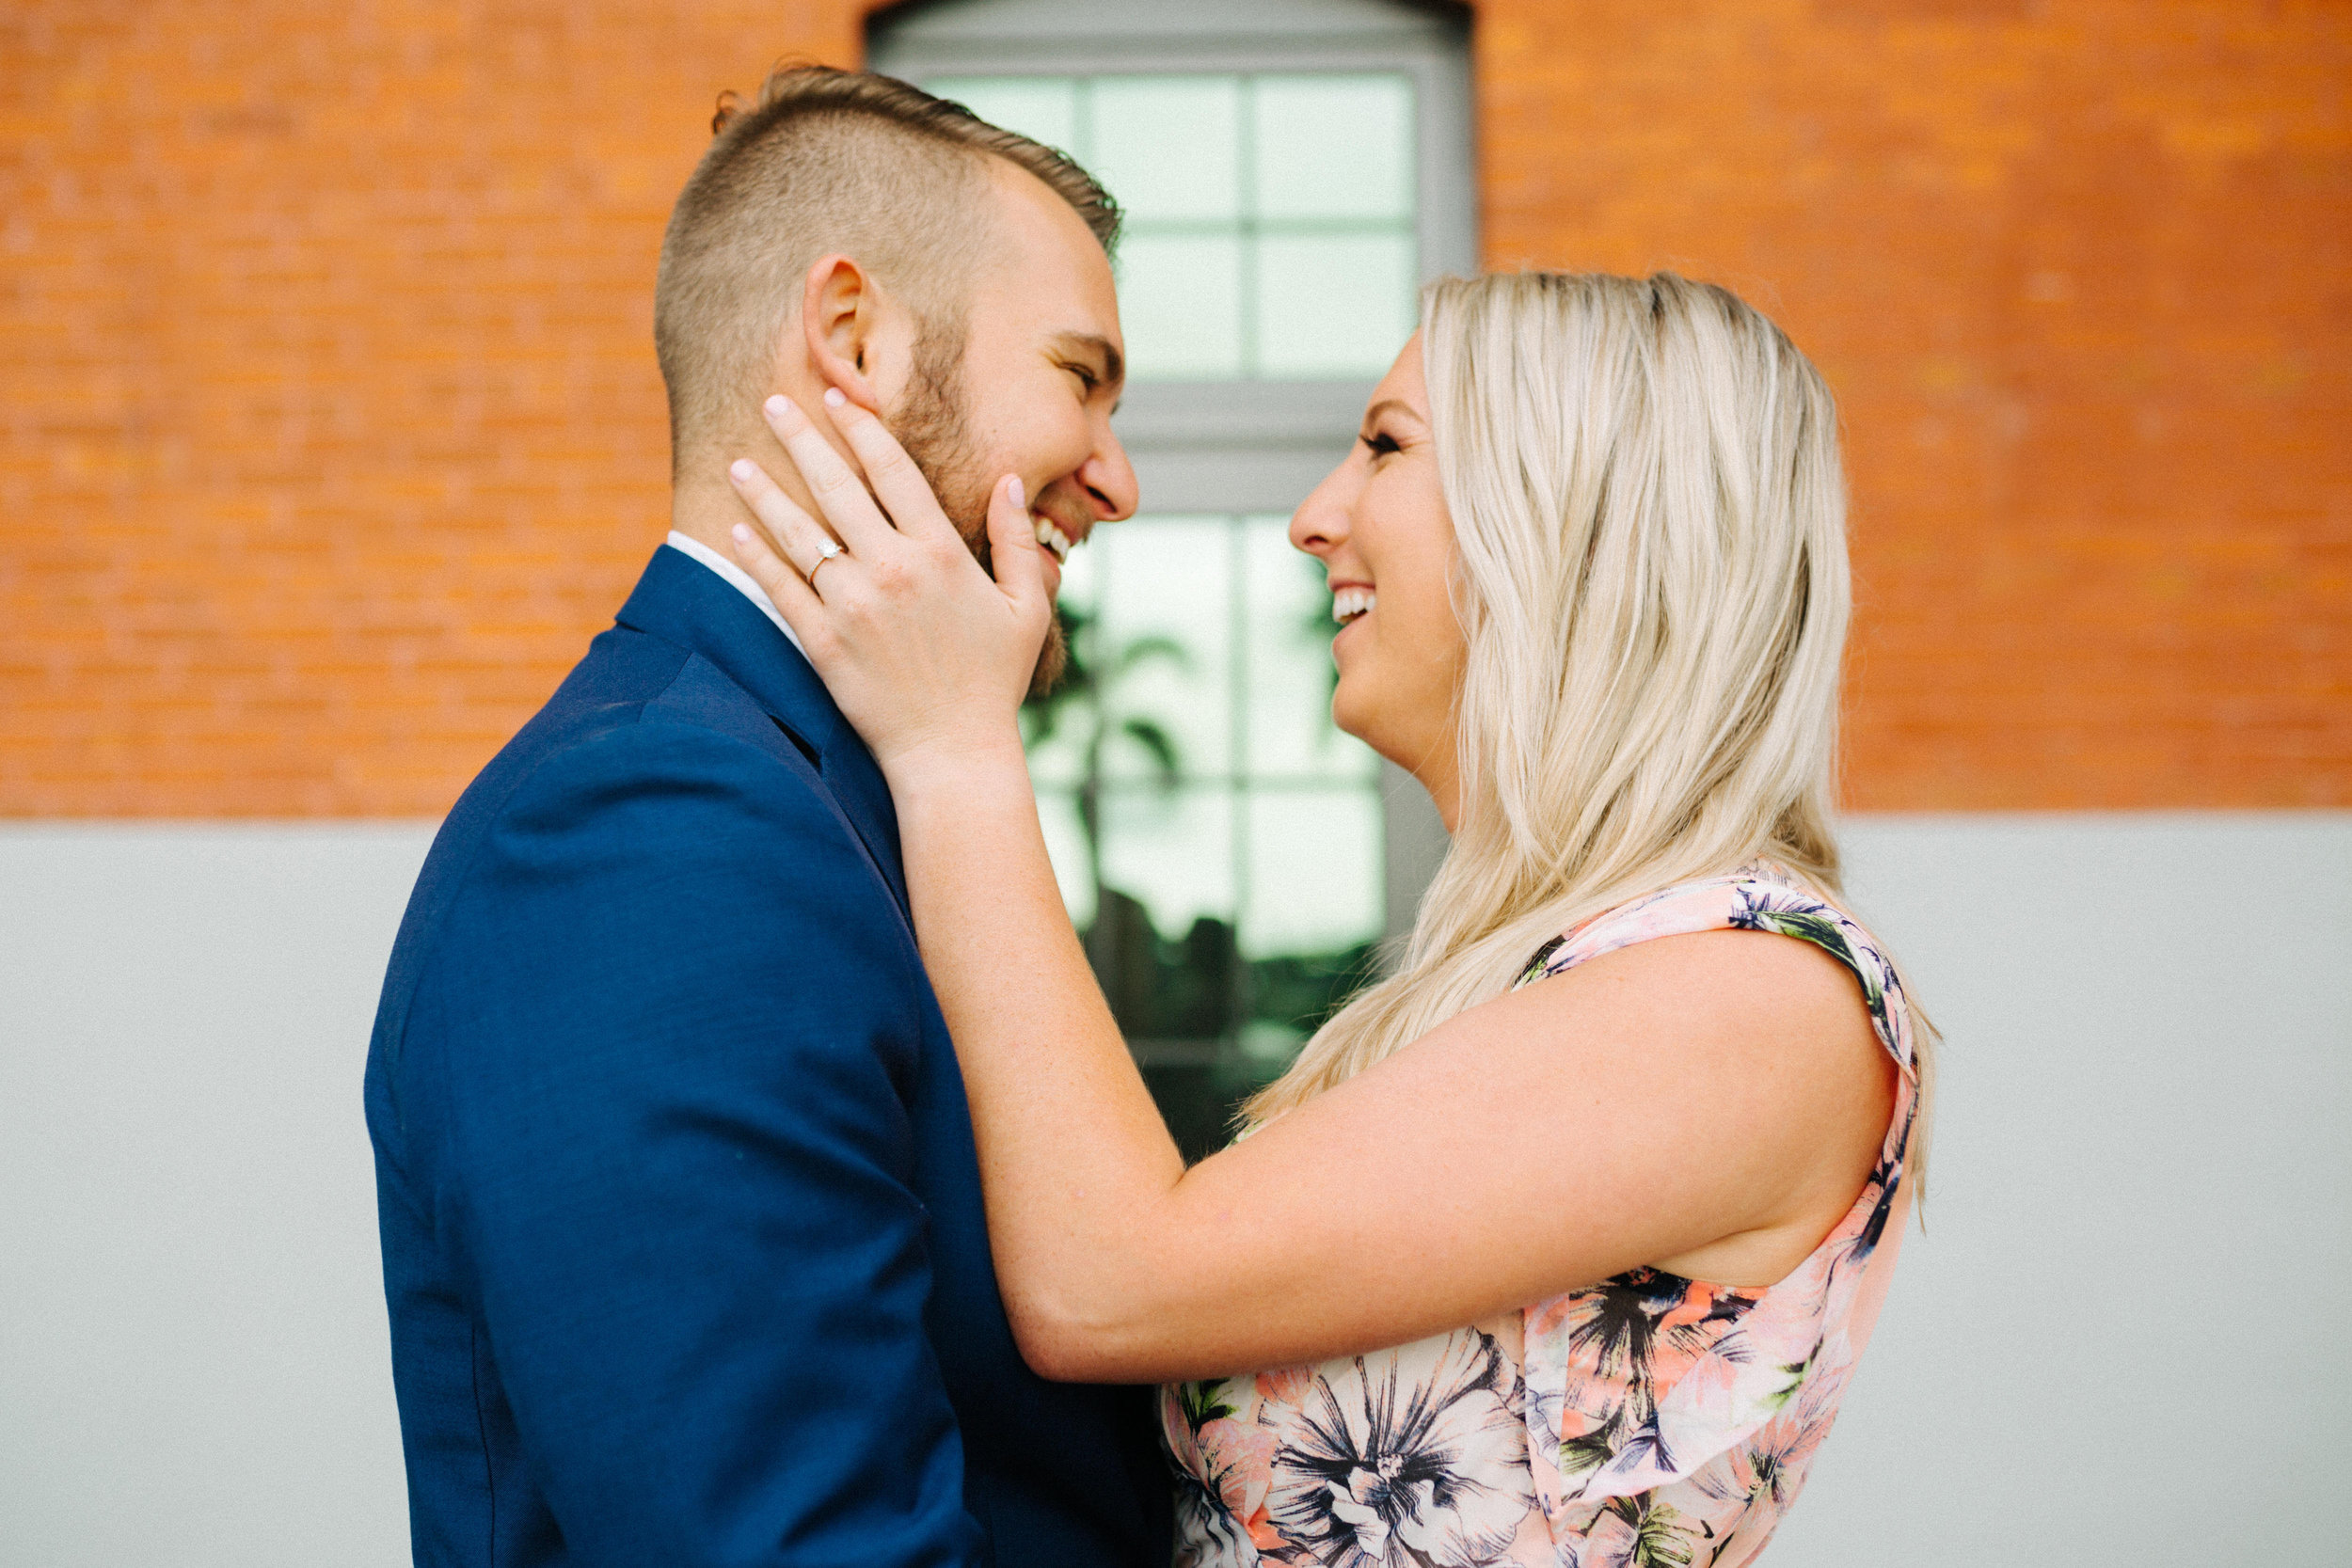 Kyle & Victoria's Engagement Session - Jake & Katie Photography_115.jpg